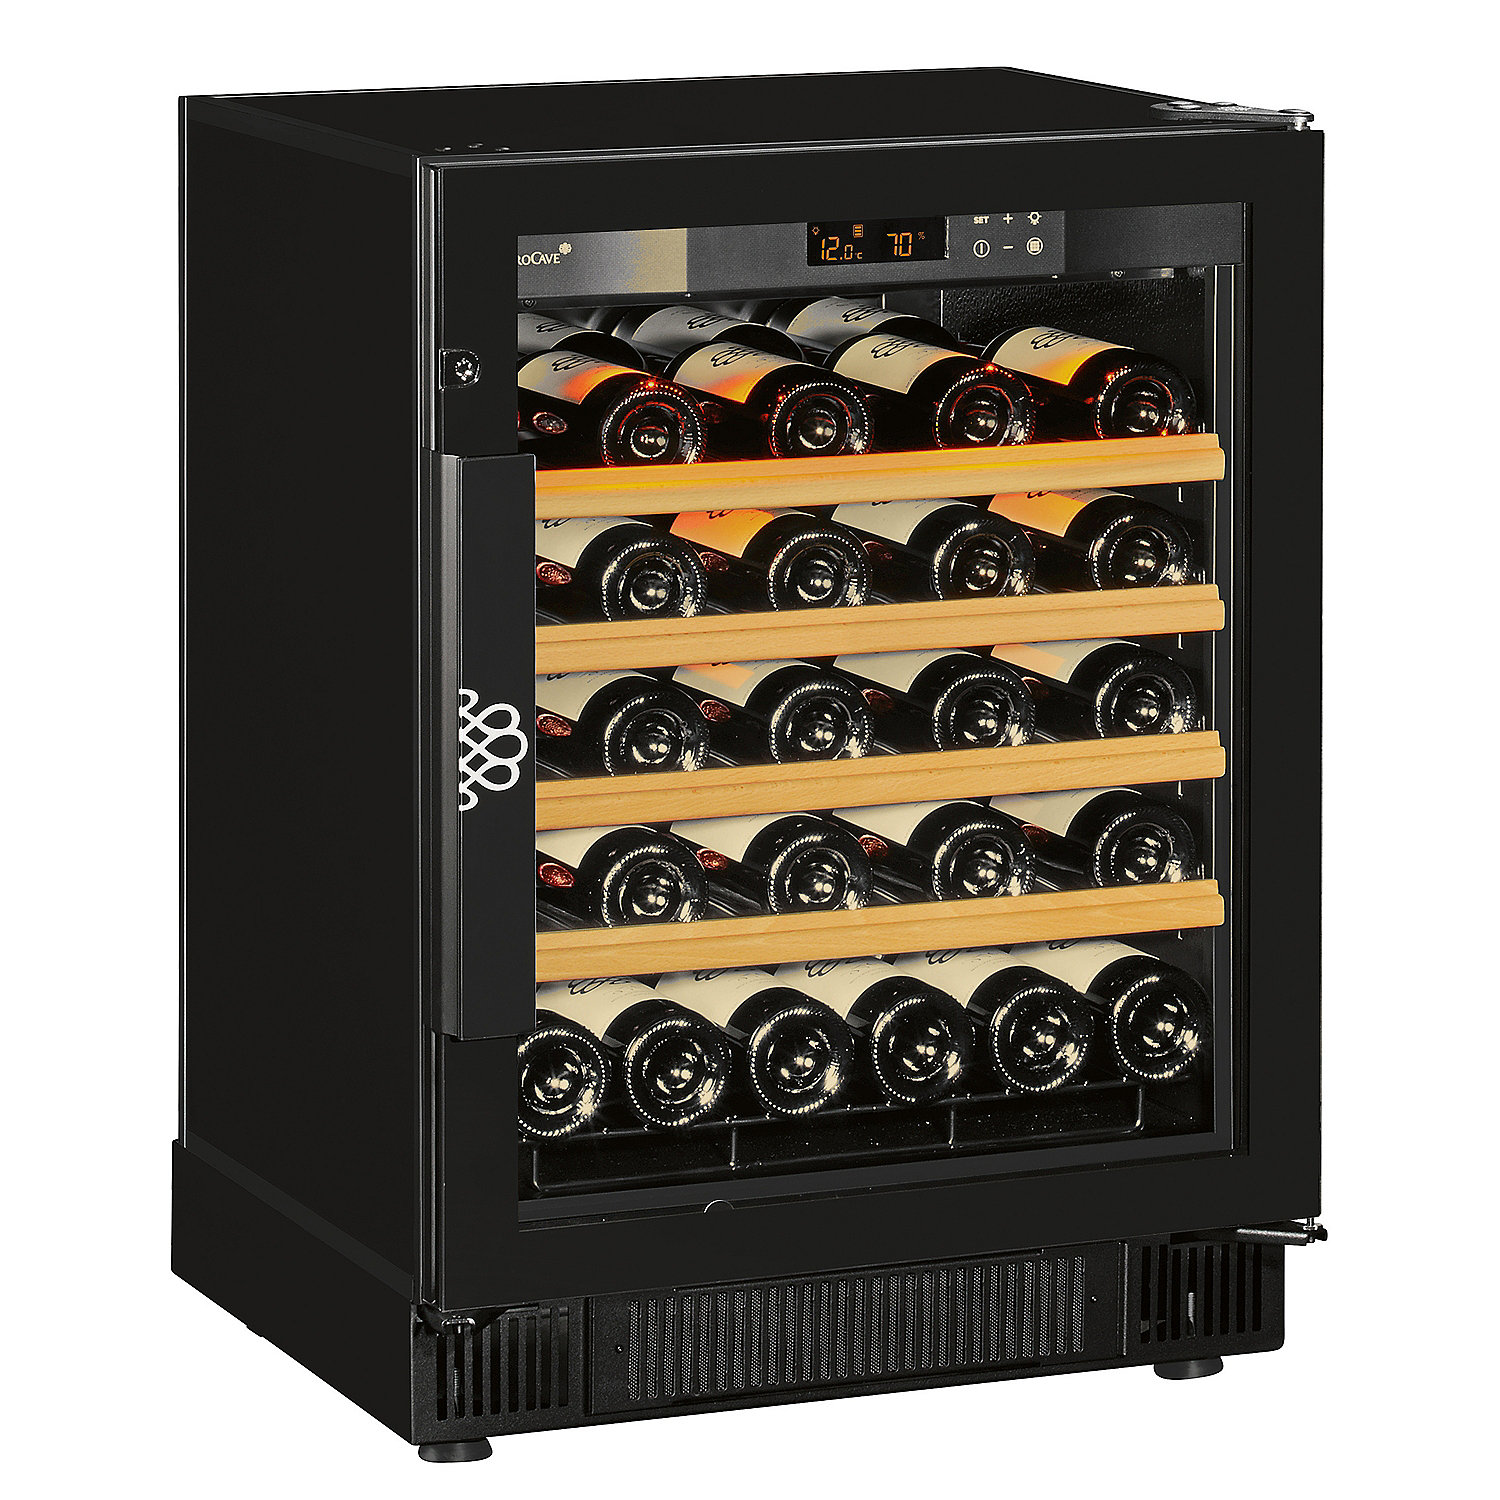 Artevino Reviews Artevino Wine Cabinets